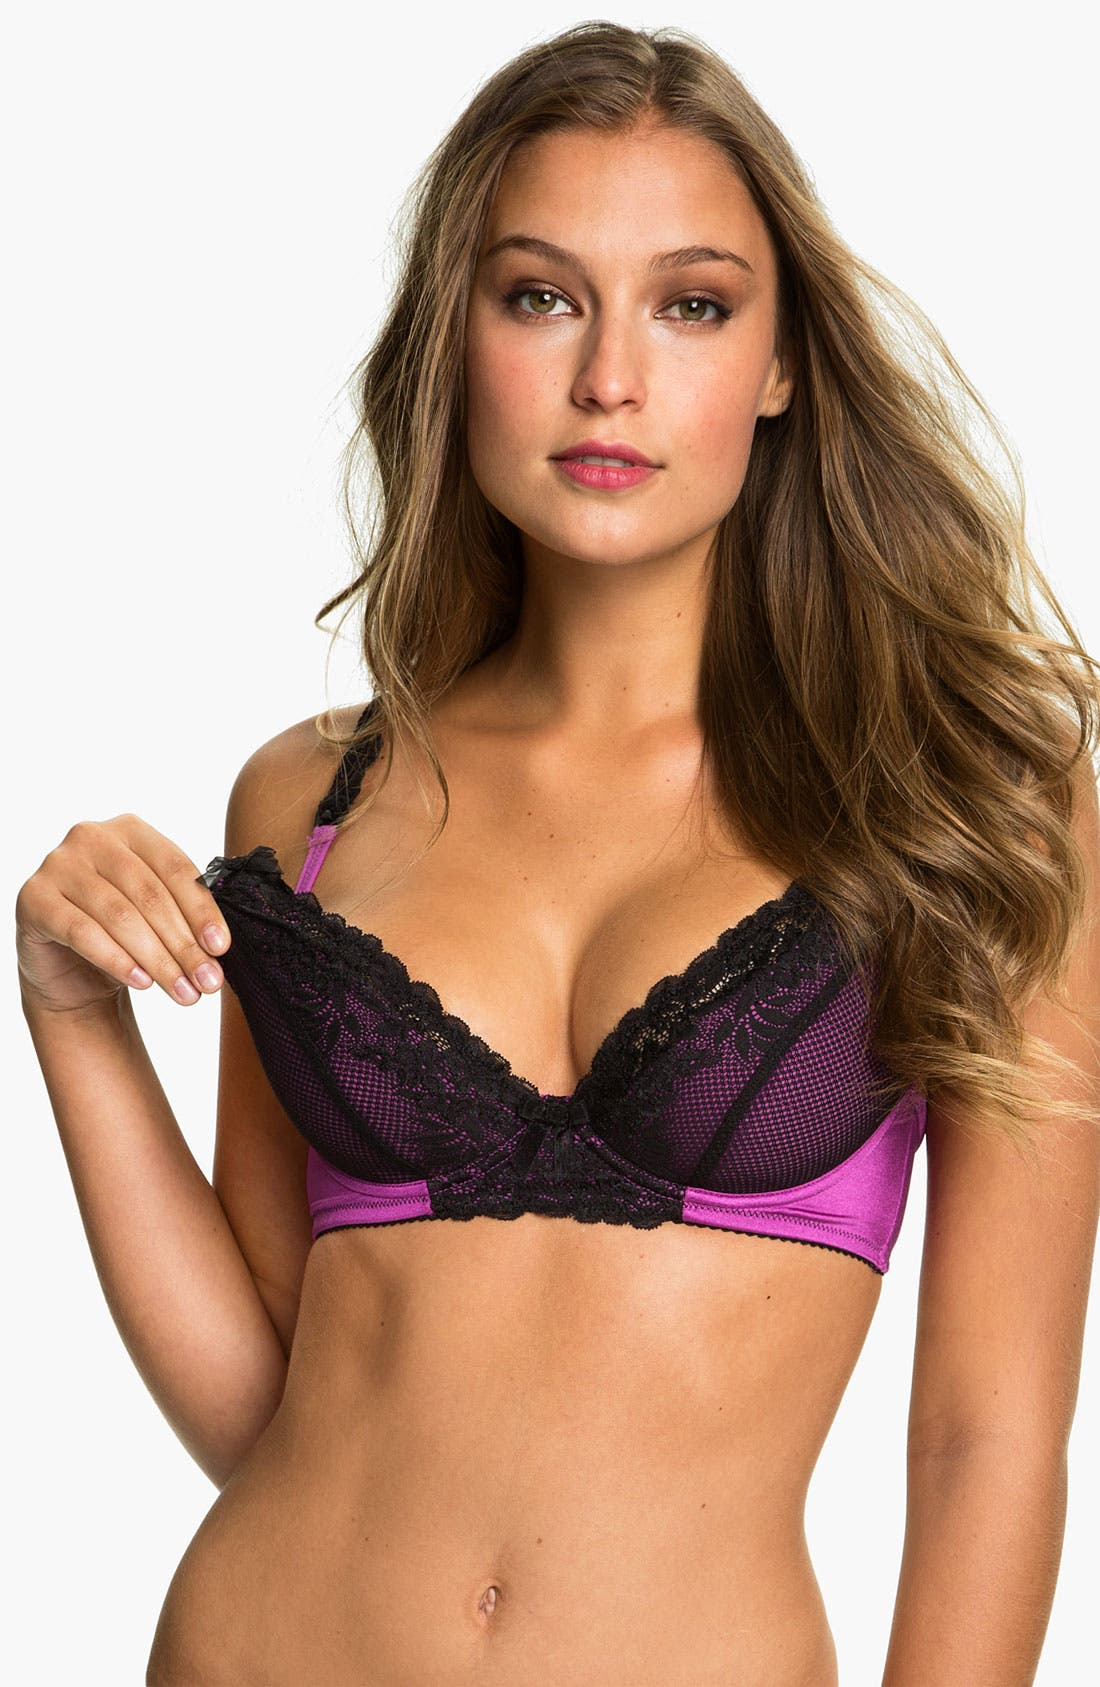 Alternate Image 1 Selected - Cake 'Turkish Delight' Molded Underwire Plunge Nursing Bra